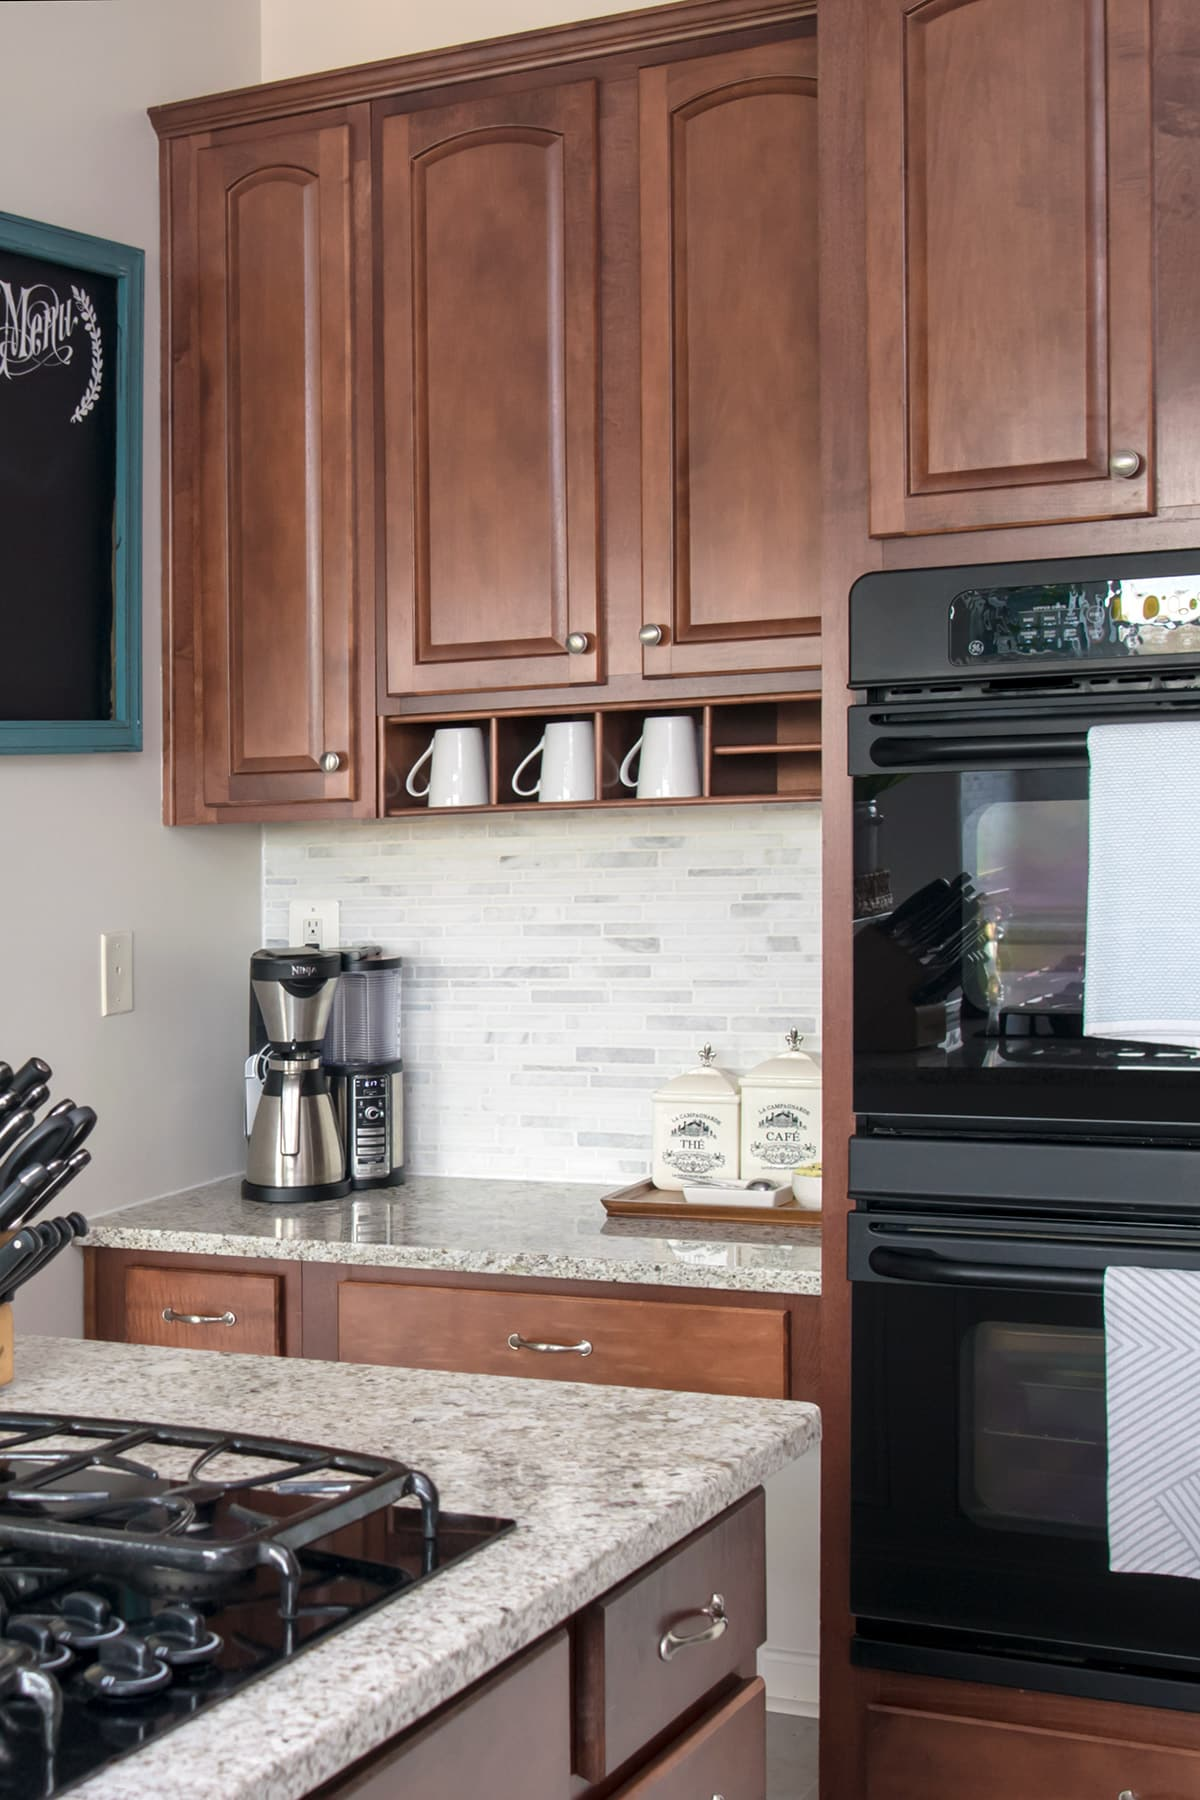 Coffee bar nook by double oven in kitchen. Dark wood cabinets stocked with white coffee mugs above coffee machine, canisters, spoons, and bowl of sweetener.